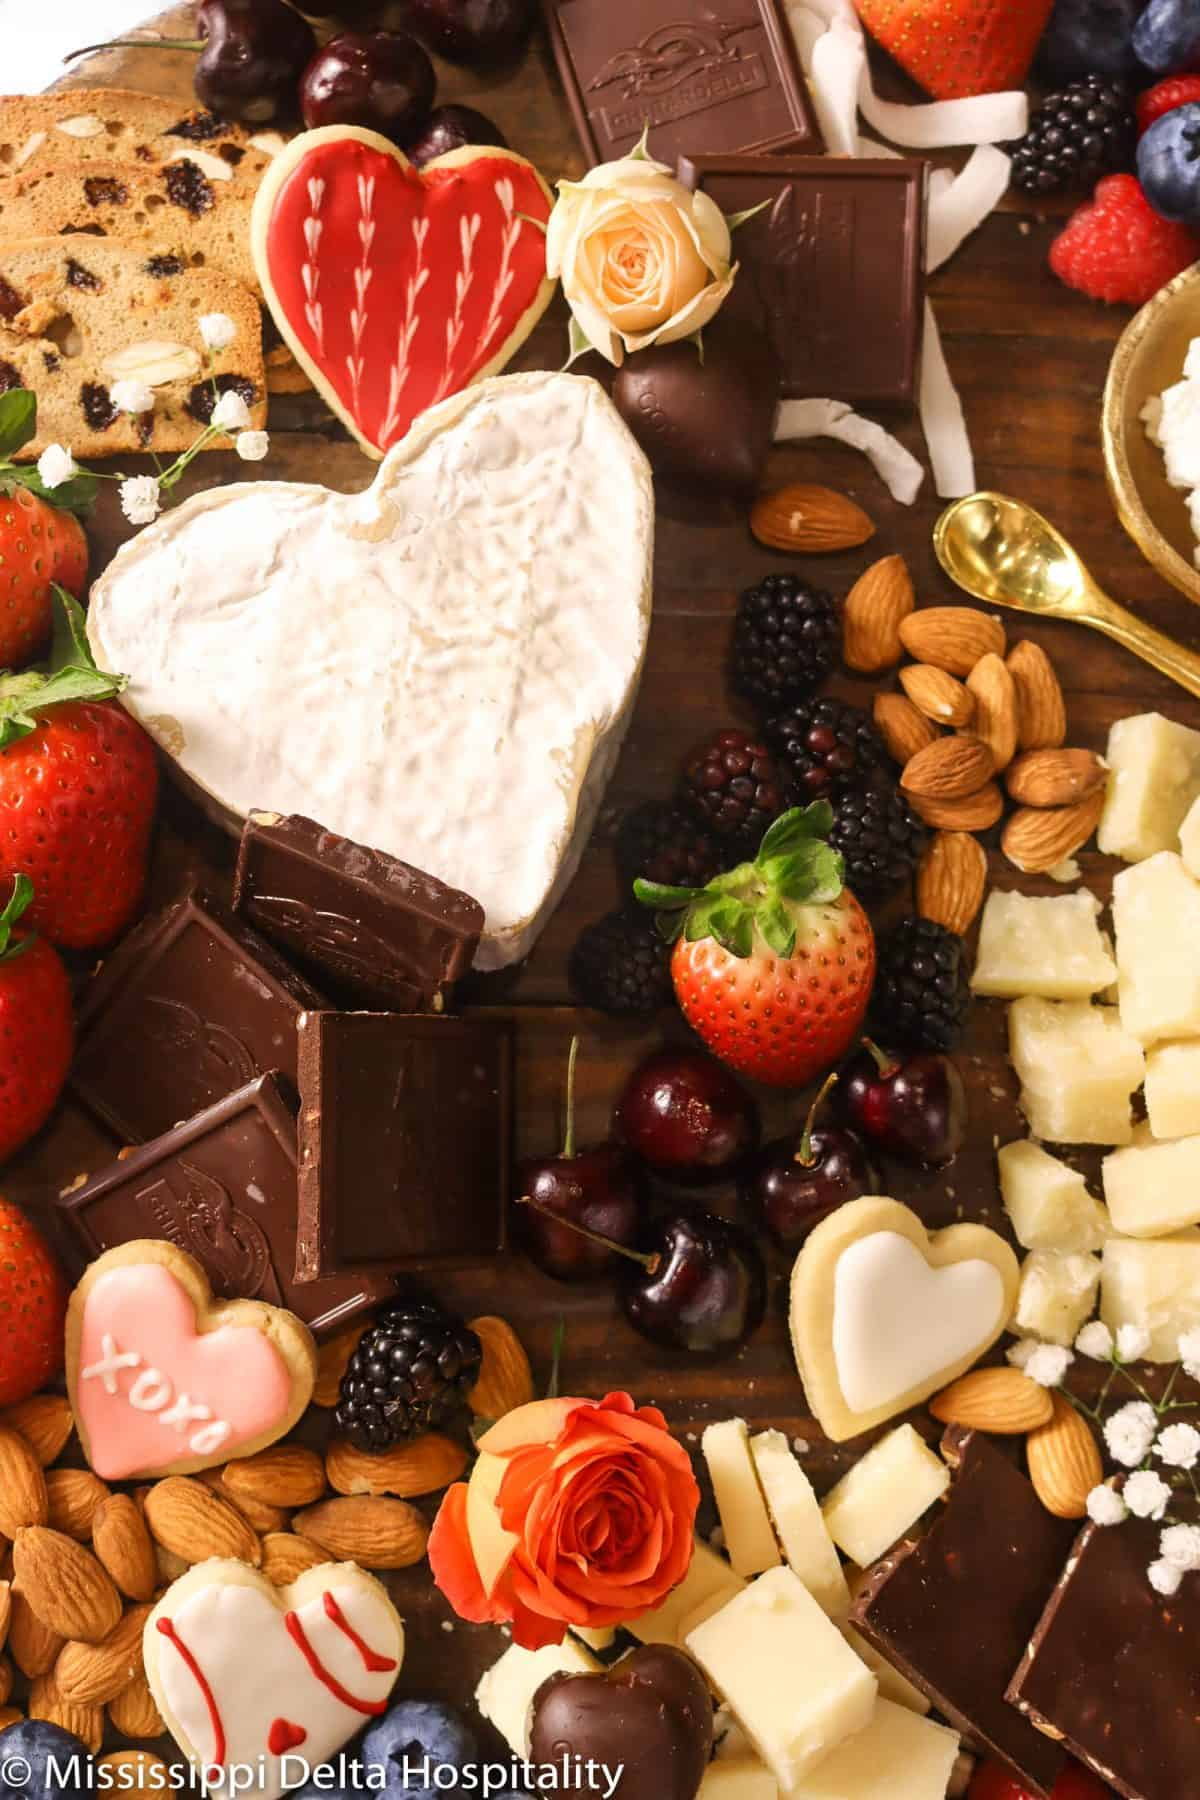 wood serving tray with cheeses, berries, chocolates, almonds, fresh flowers, cinnamon cookies, and cugar cookies